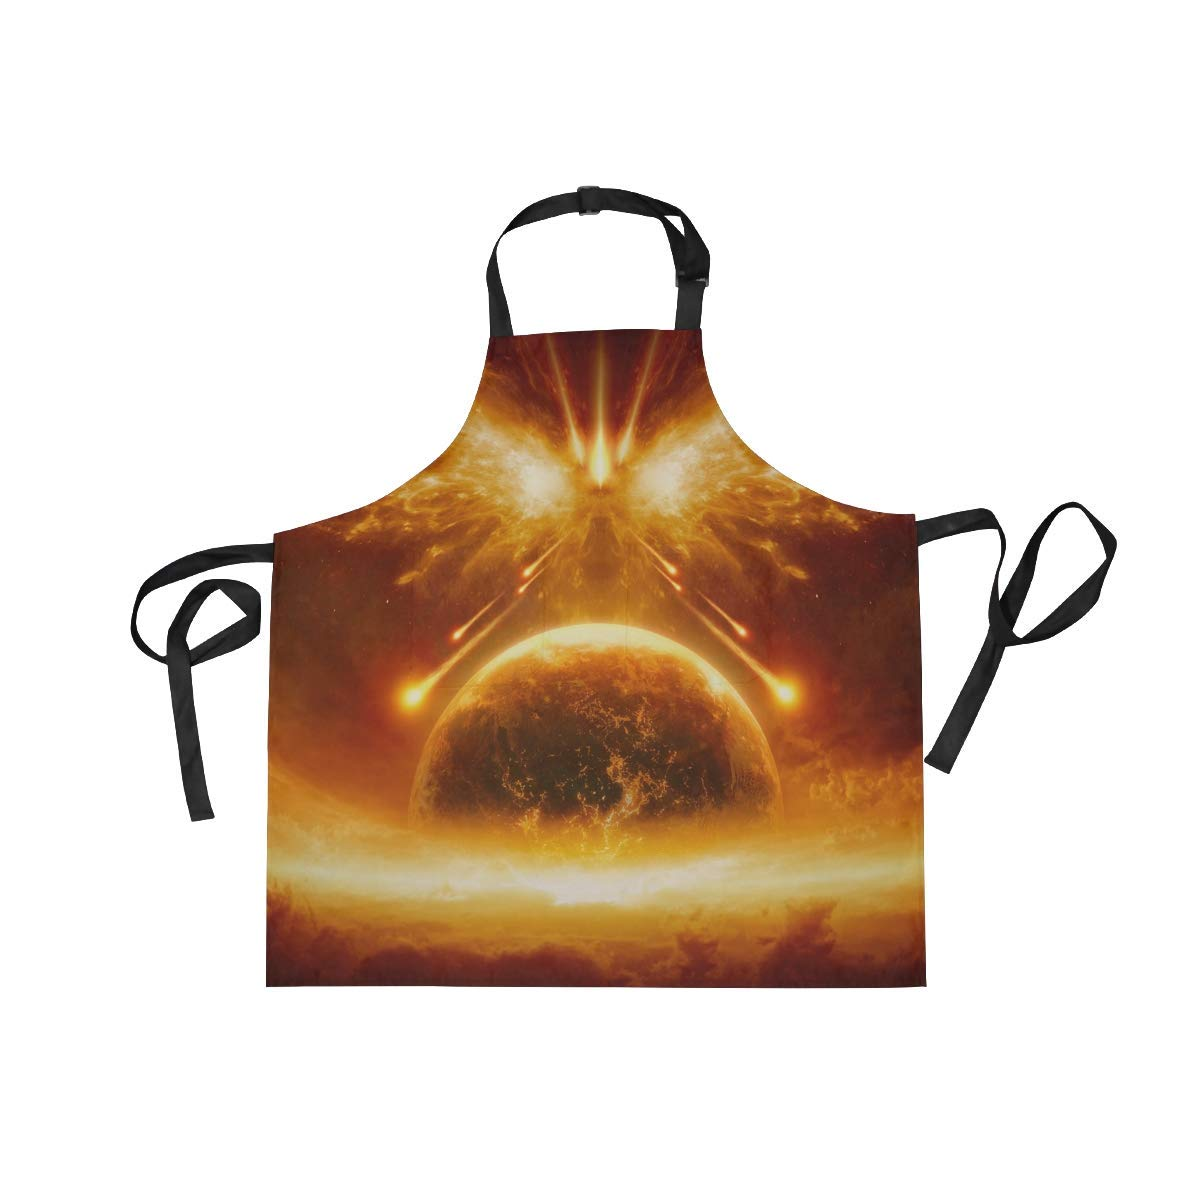 Unisex Apron End of World Majestic Space Fire Earth Adjustable Apron with Pockets for Men Women Kitchen Personal Decor Cooking Baking Kitchen Gardening Waist Apron Adult Apron,Twill,Multicolor